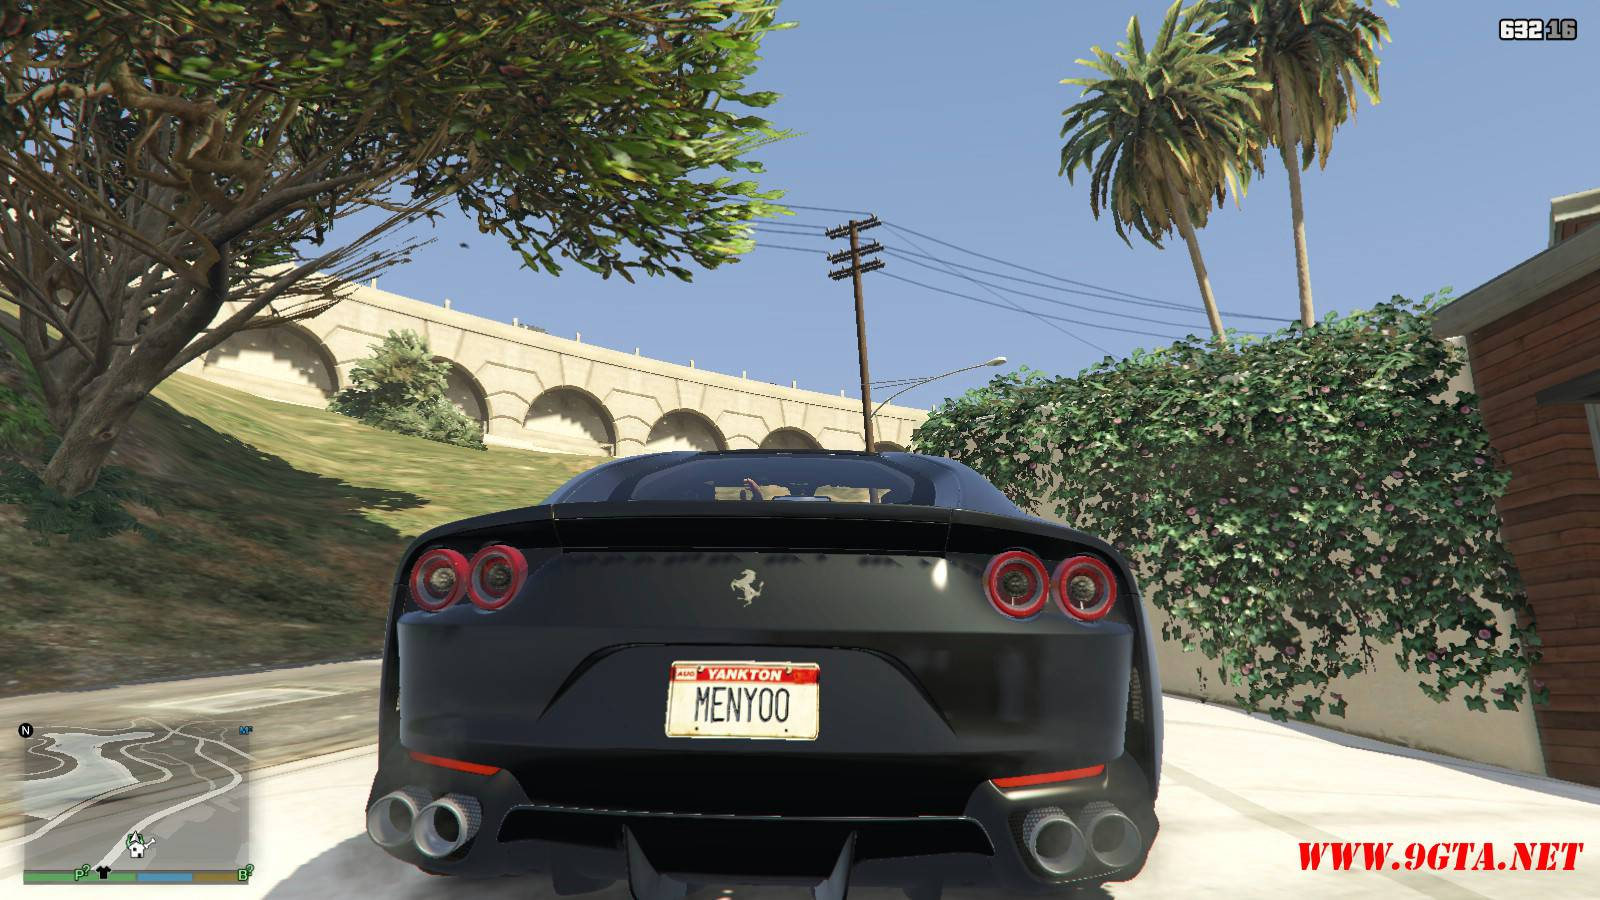 2018 Ferrari 812 Superfast Mod For GTA5 (5)